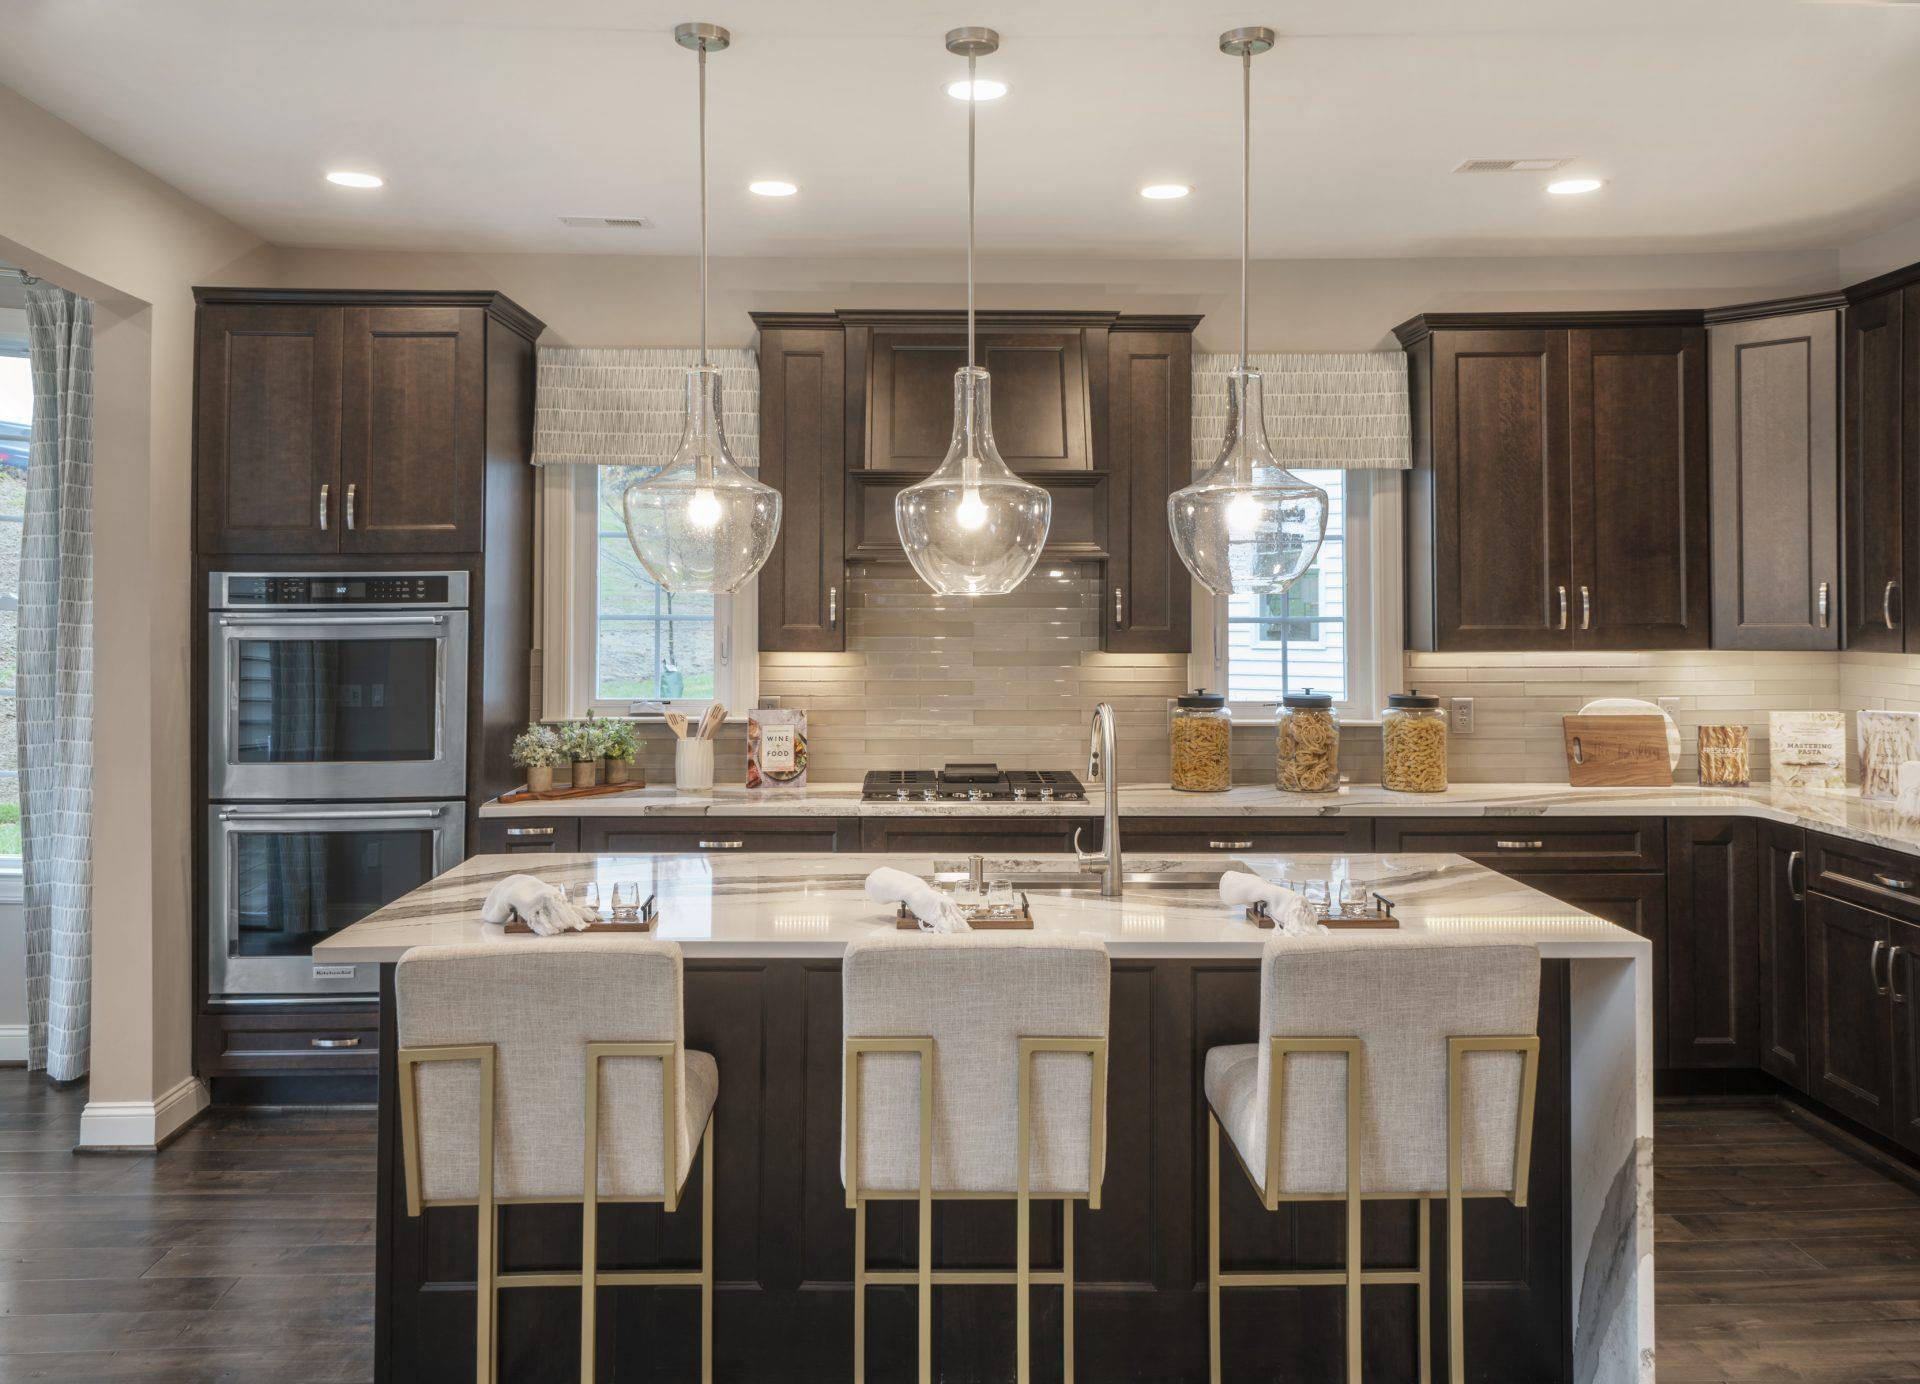 Kitchen featured in The Franklin By Traditions of America in Philadelphia, PA